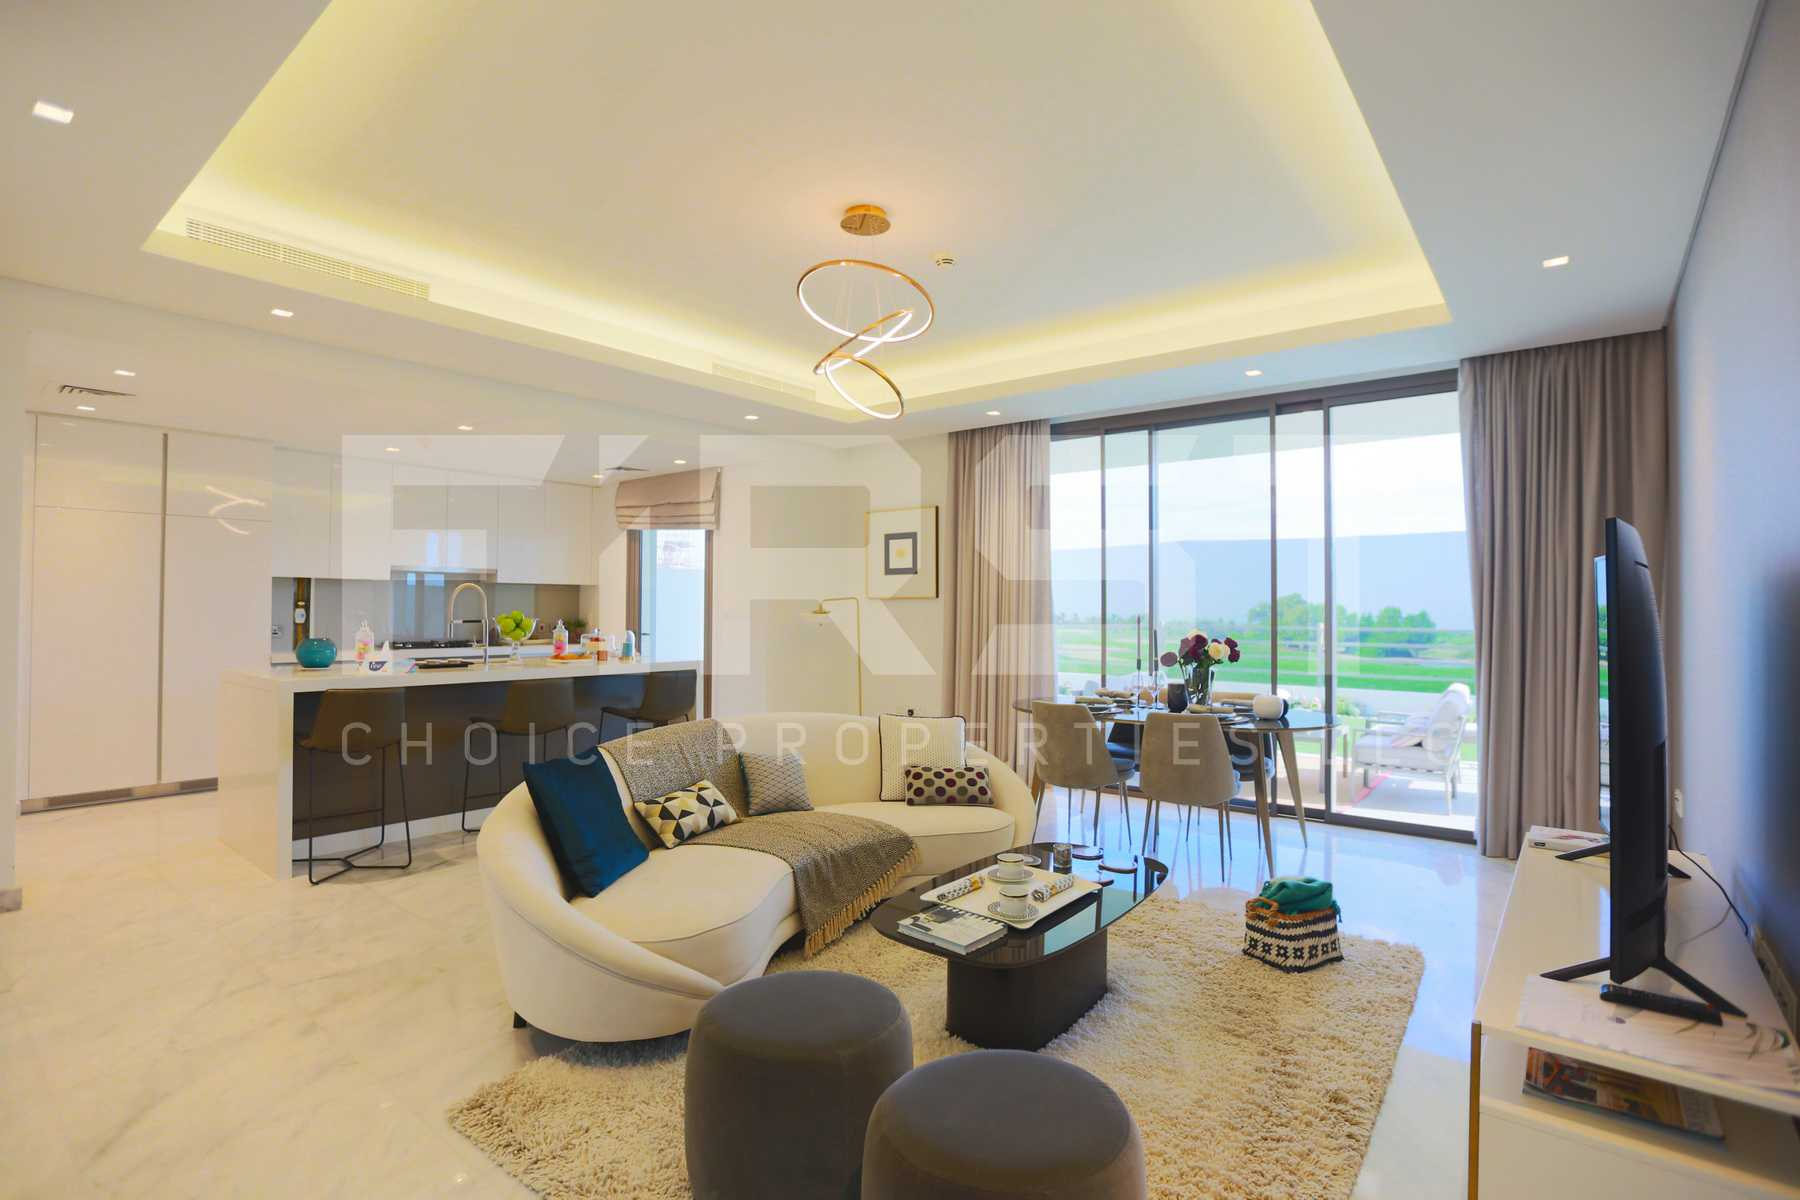 Internal Photo of 4 Bedroom Villa Type 4F in Yas Acres Yas Island Abu Dhabi UAE (17).jpg